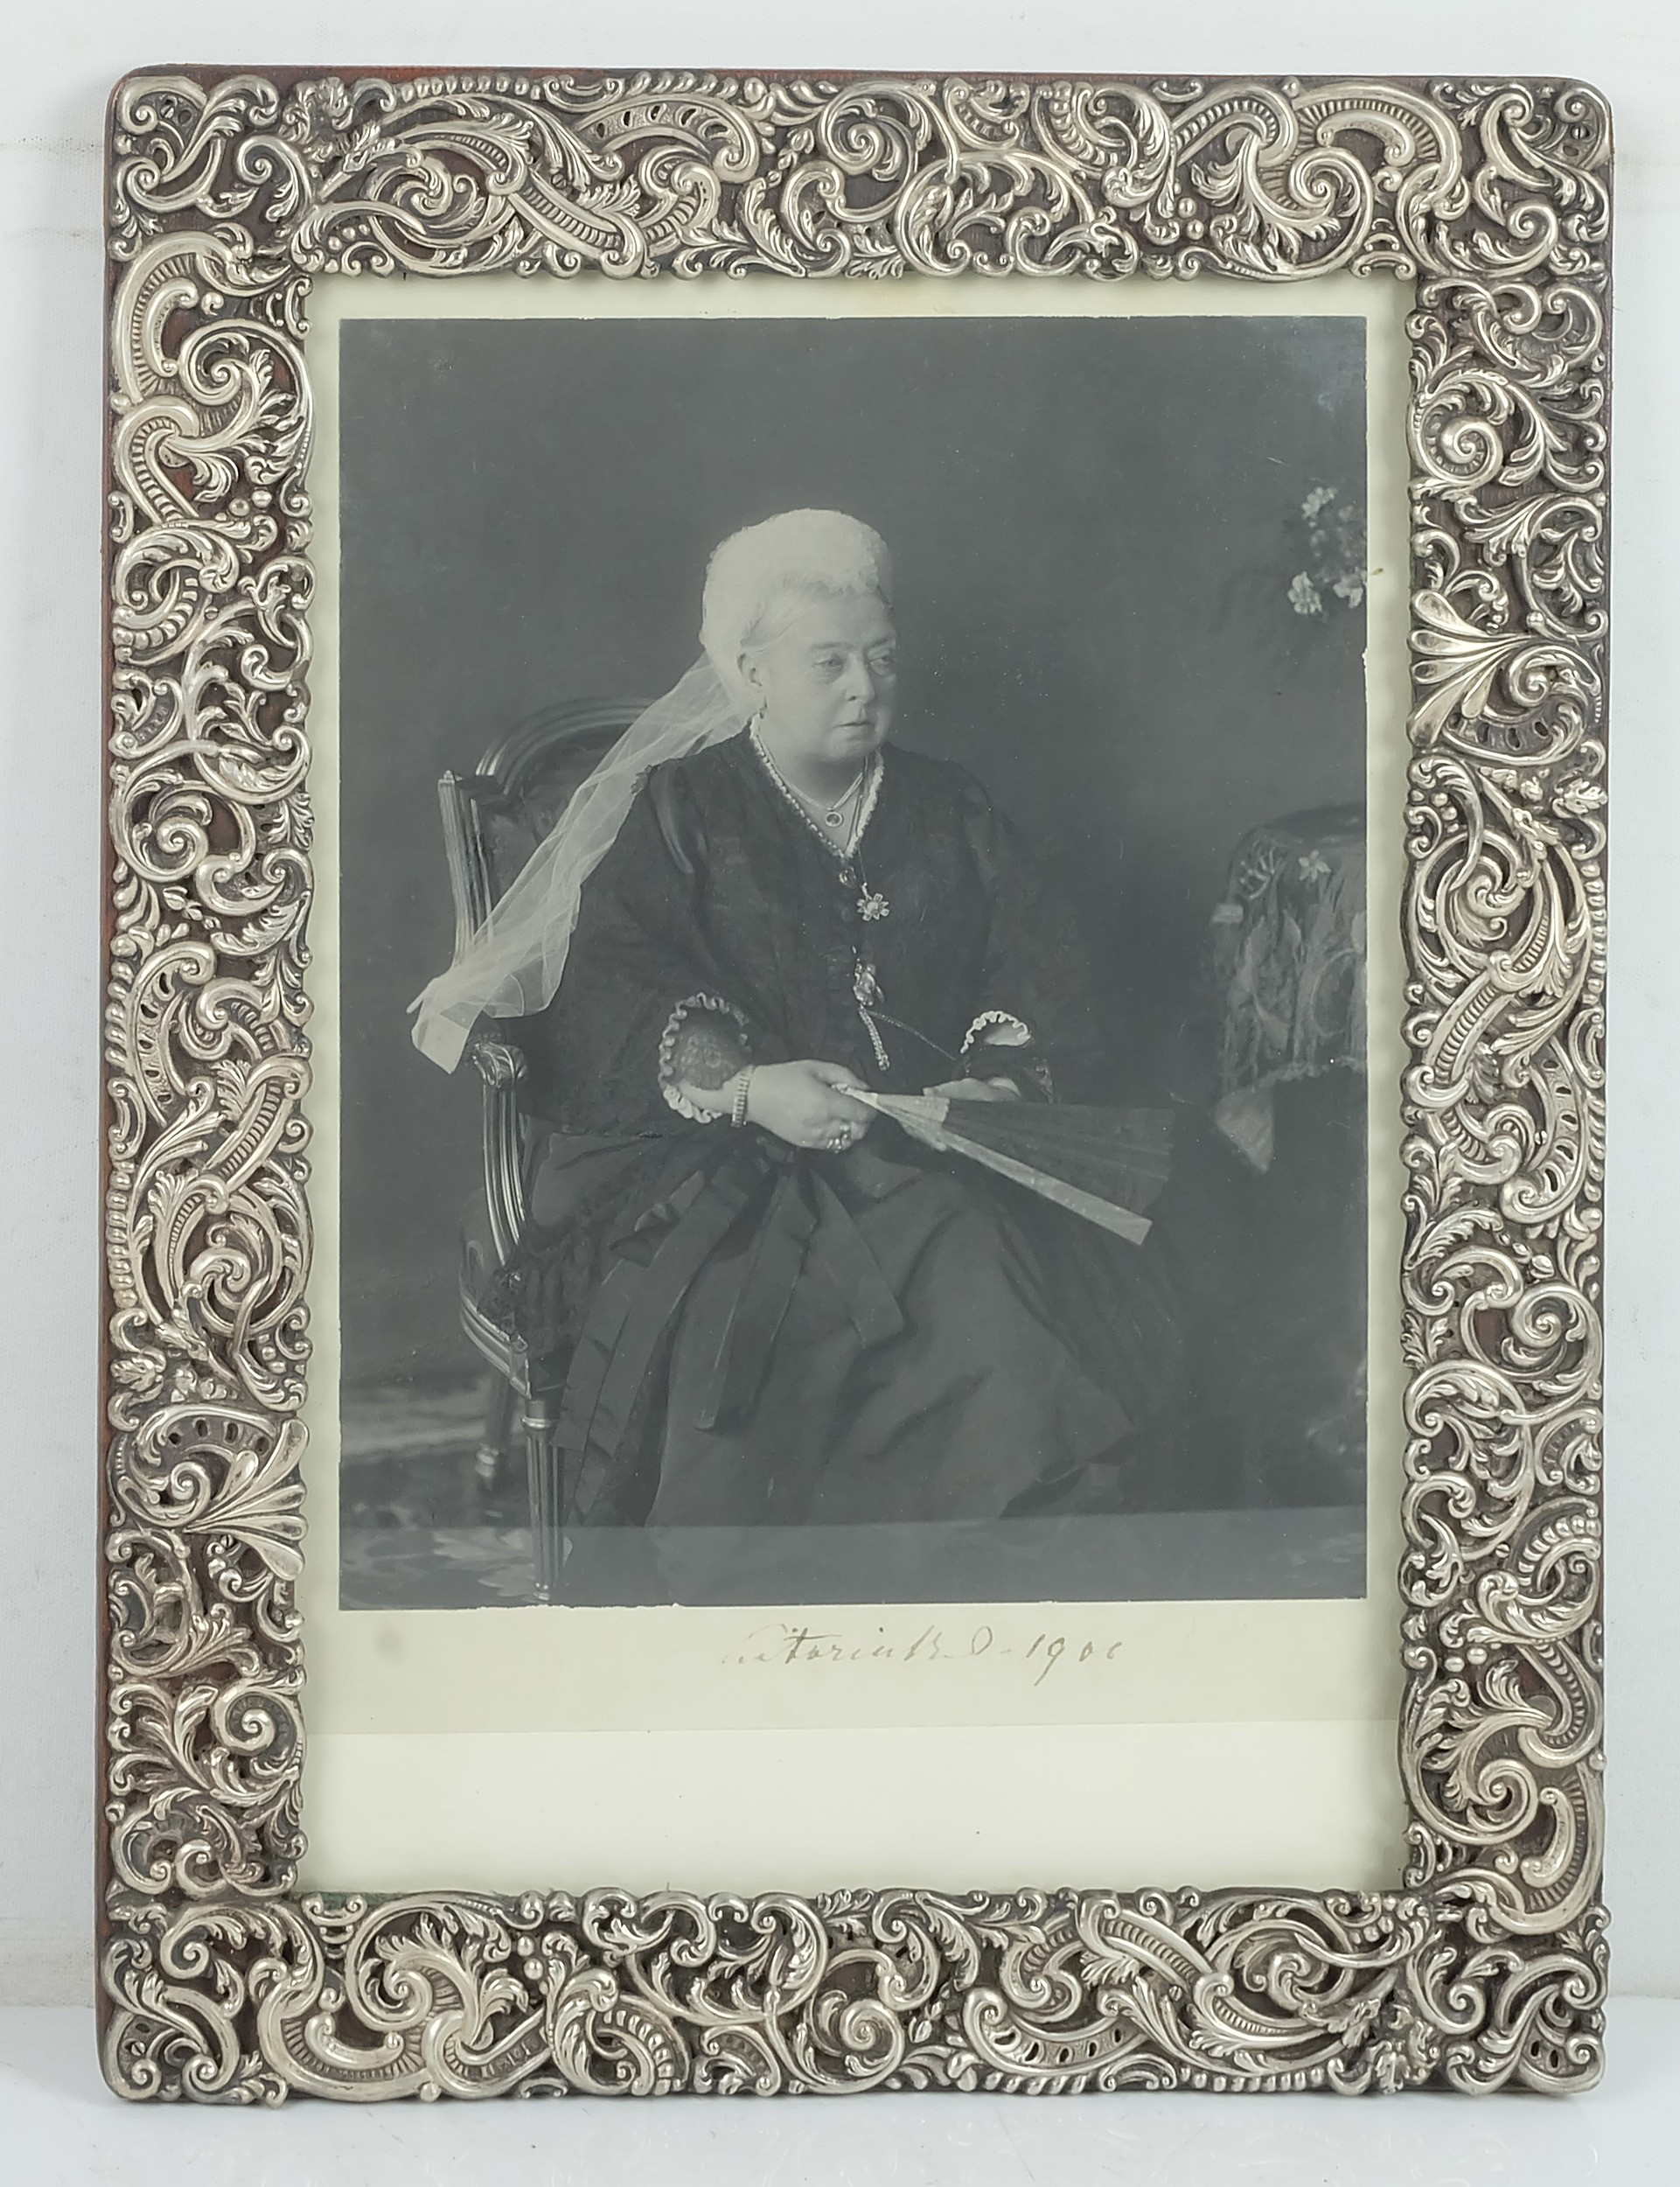 'Sterling Silver Framed Signed Photograph of Queen Victoria 1900 Charles Henry Dumenil London 1897'